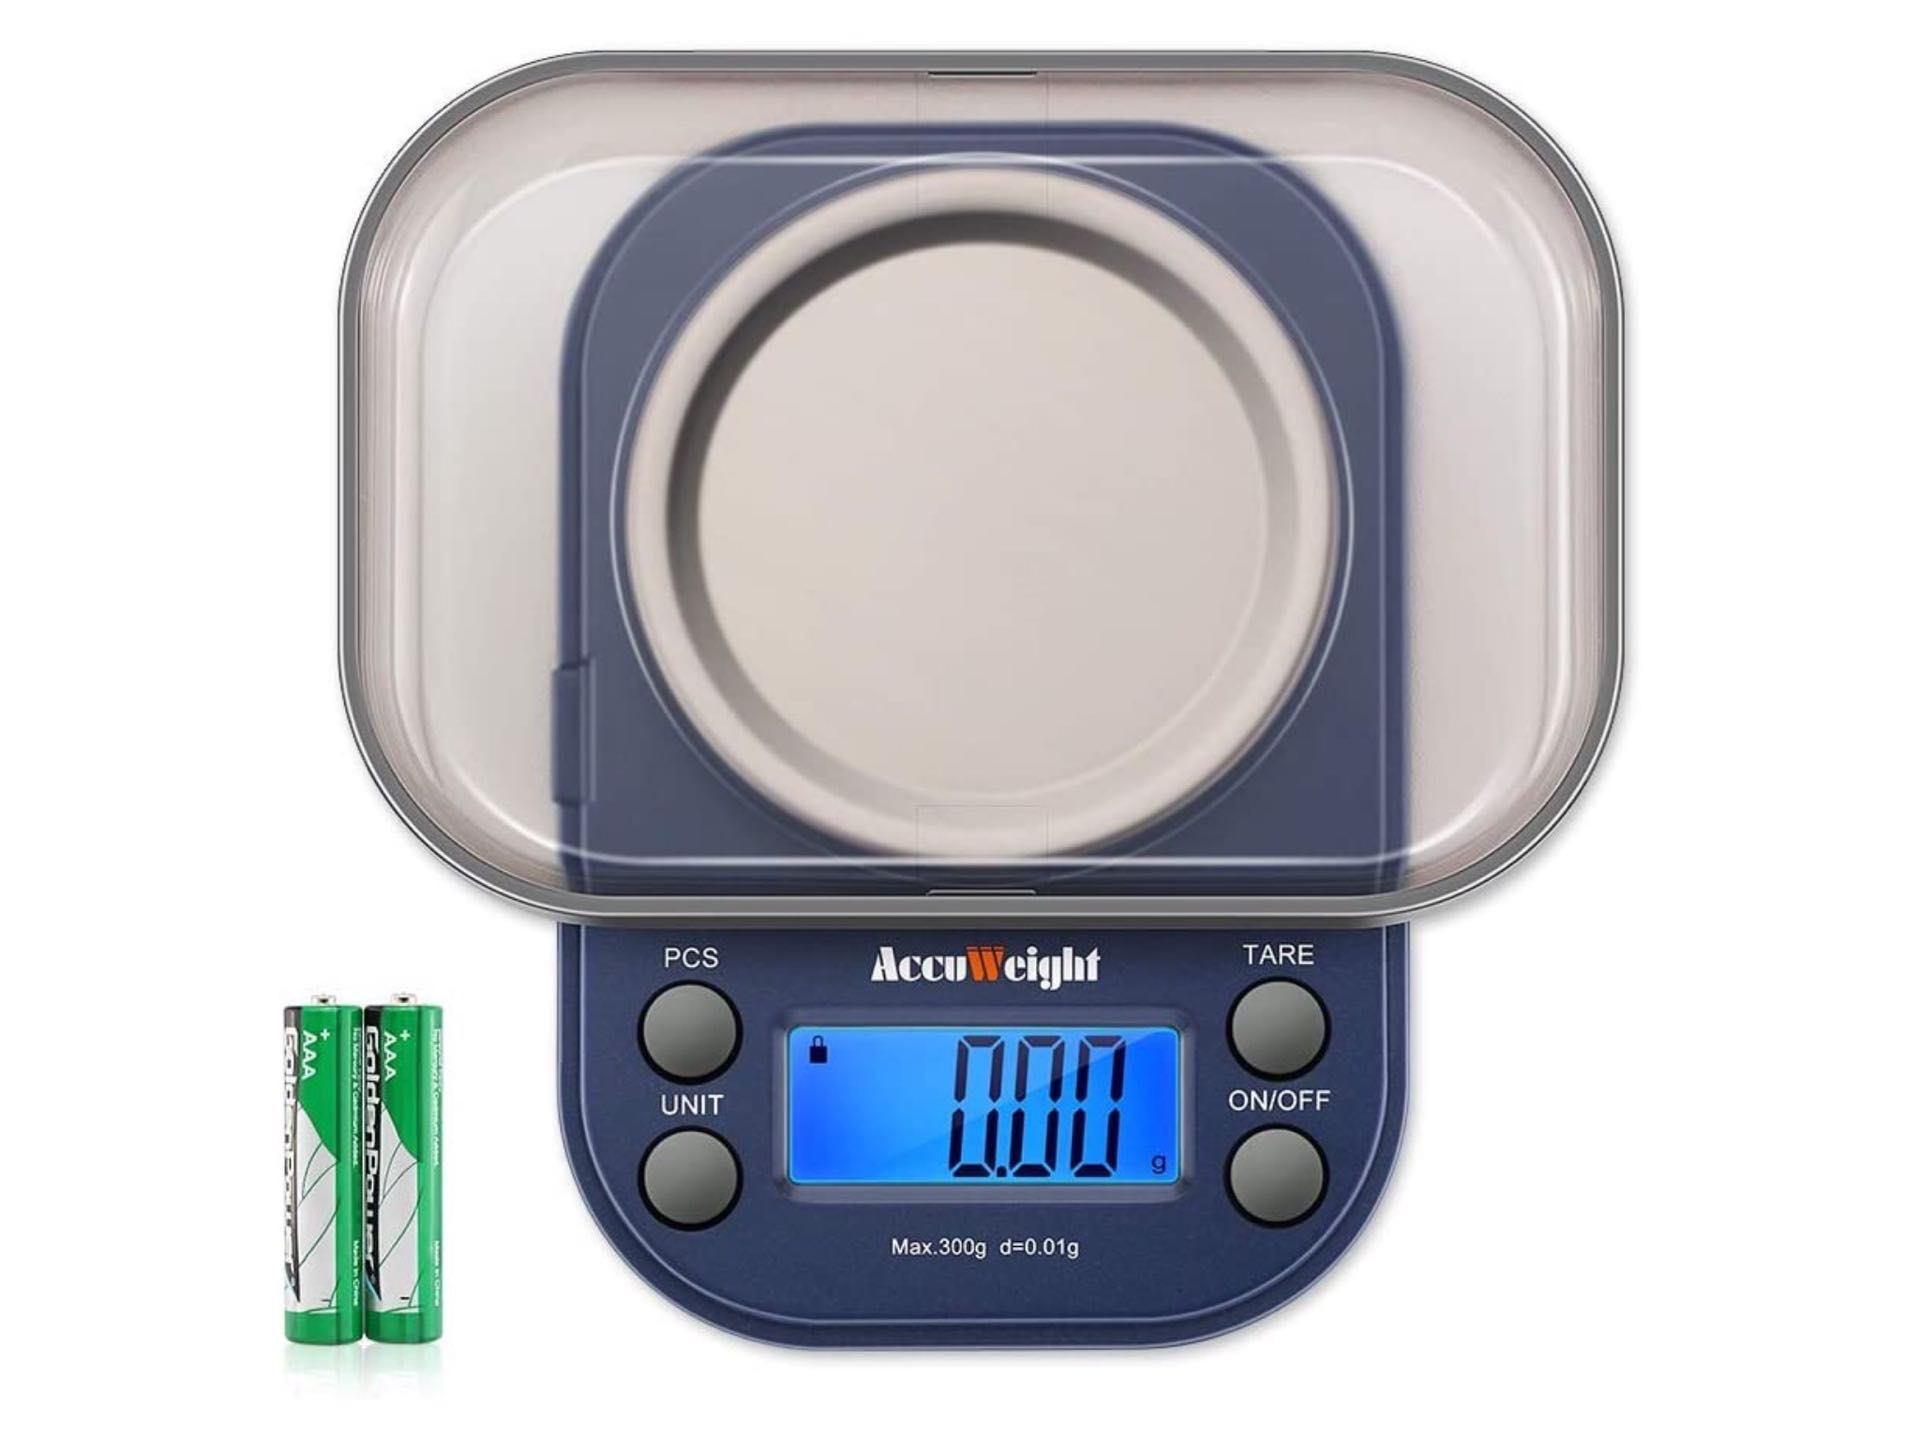 accuweight-255-mini-digital-pocket-scale